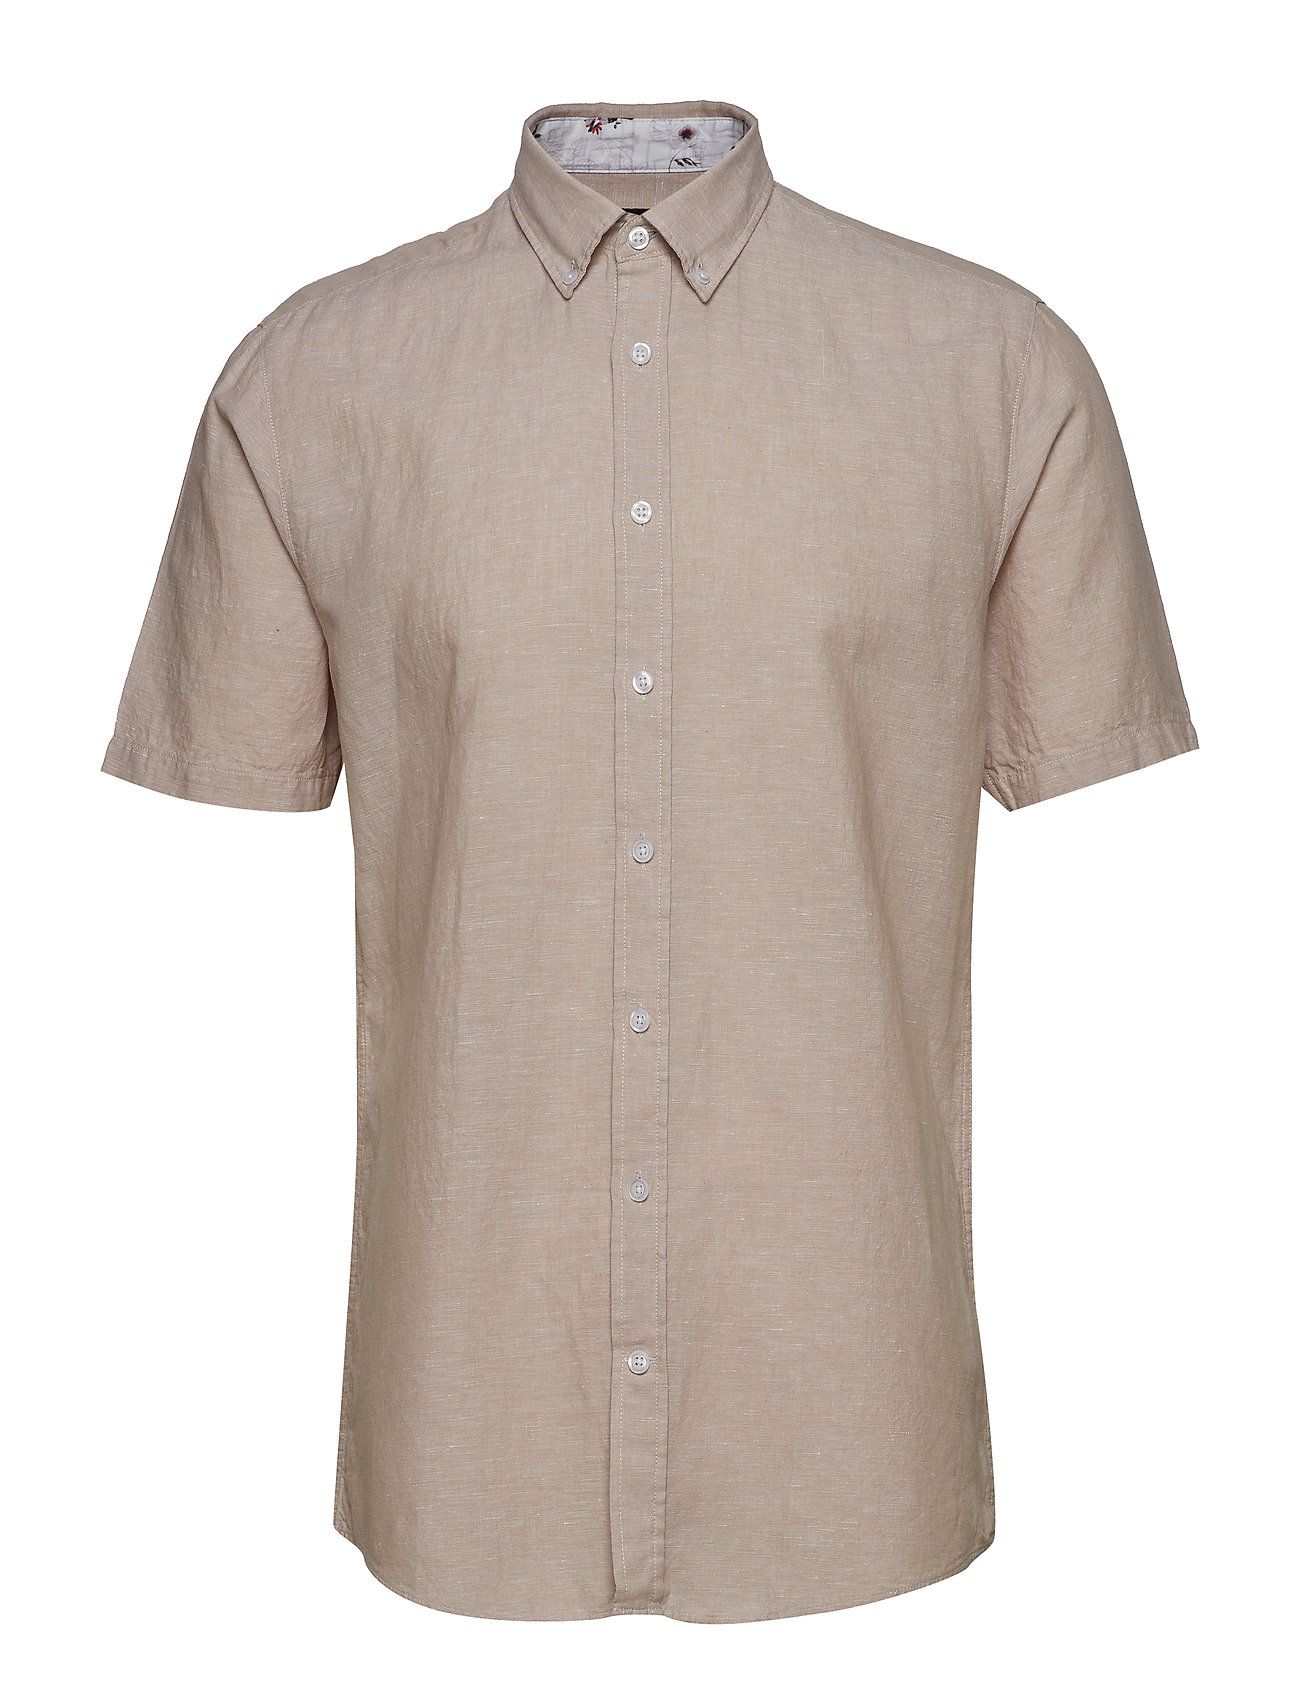 Lindbergh Solid cotton/linen shirt S/S - LIGHT SAND